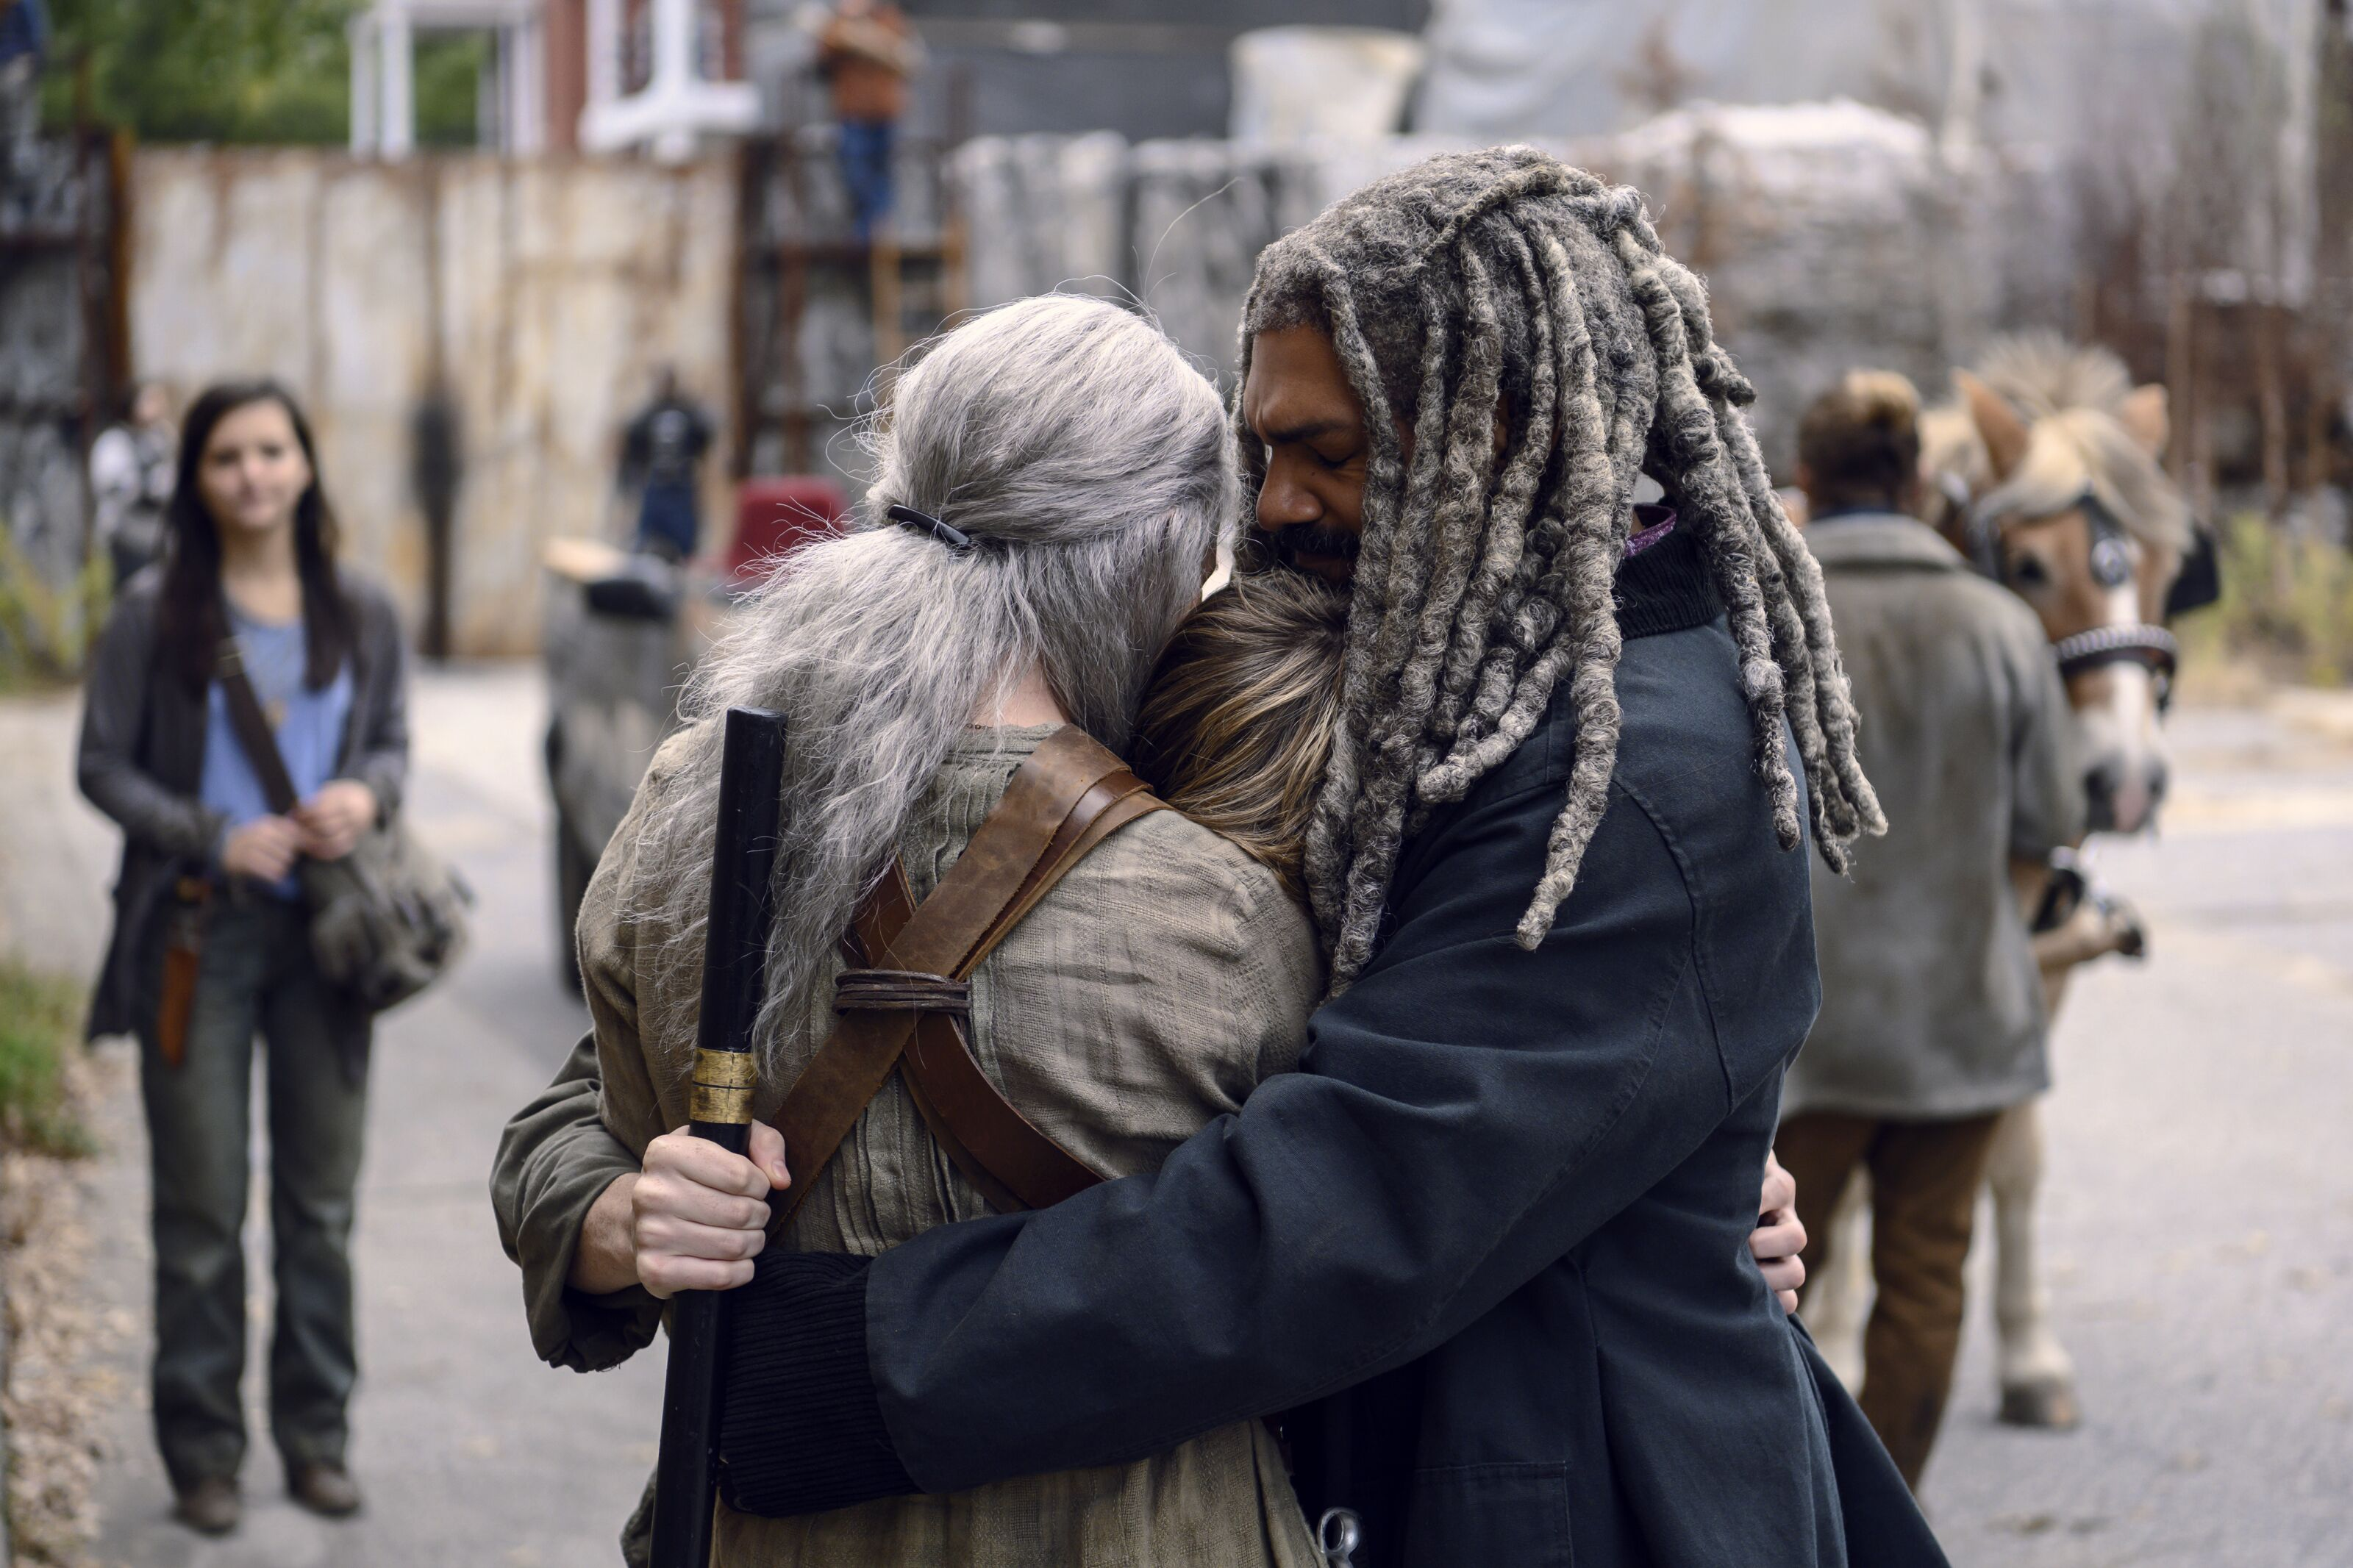 3 predictions for The Walking Dead season 9 episode 15 'The Calm Before'